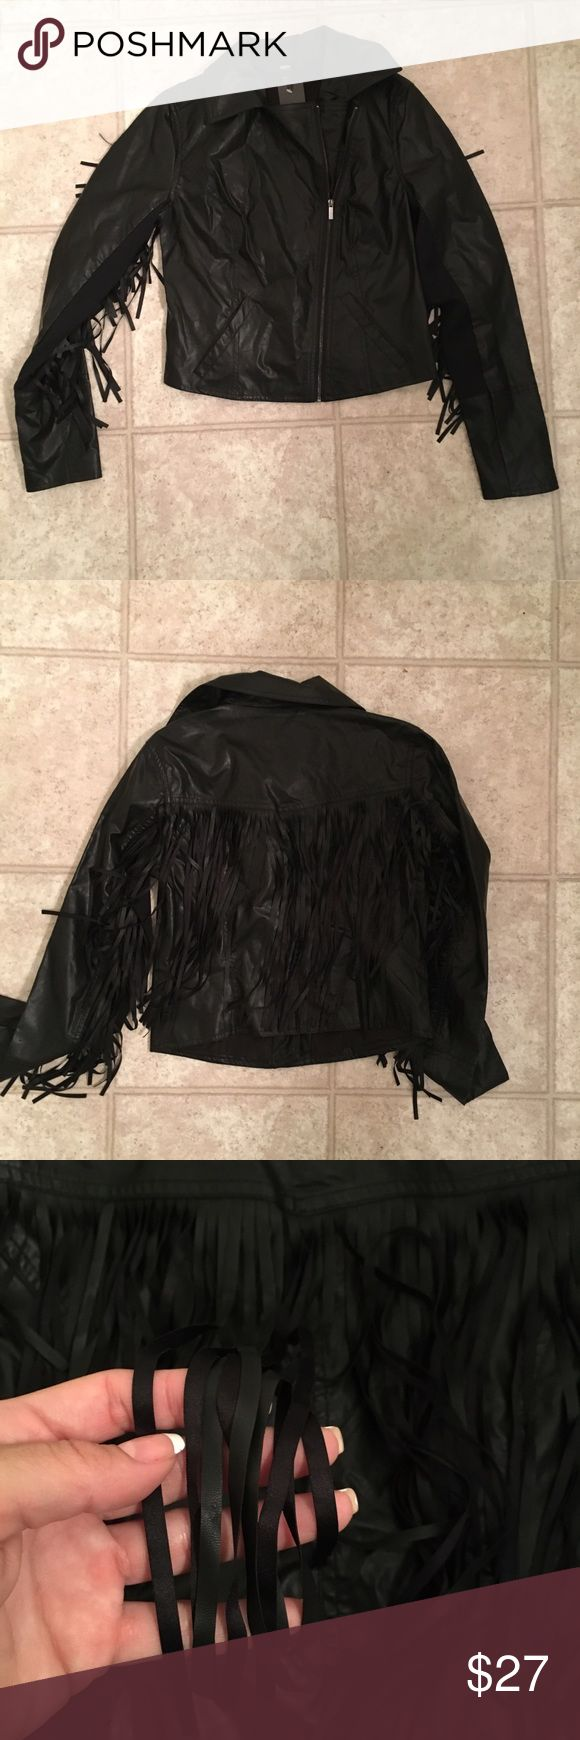 Black Mossimo Leather Jacket w Fringe Super cute, country style jacket. It looks so good on! True to size and brand new! Wear to a concert, festival, or a night out! Mossimo Supply Co Jackets & Coats